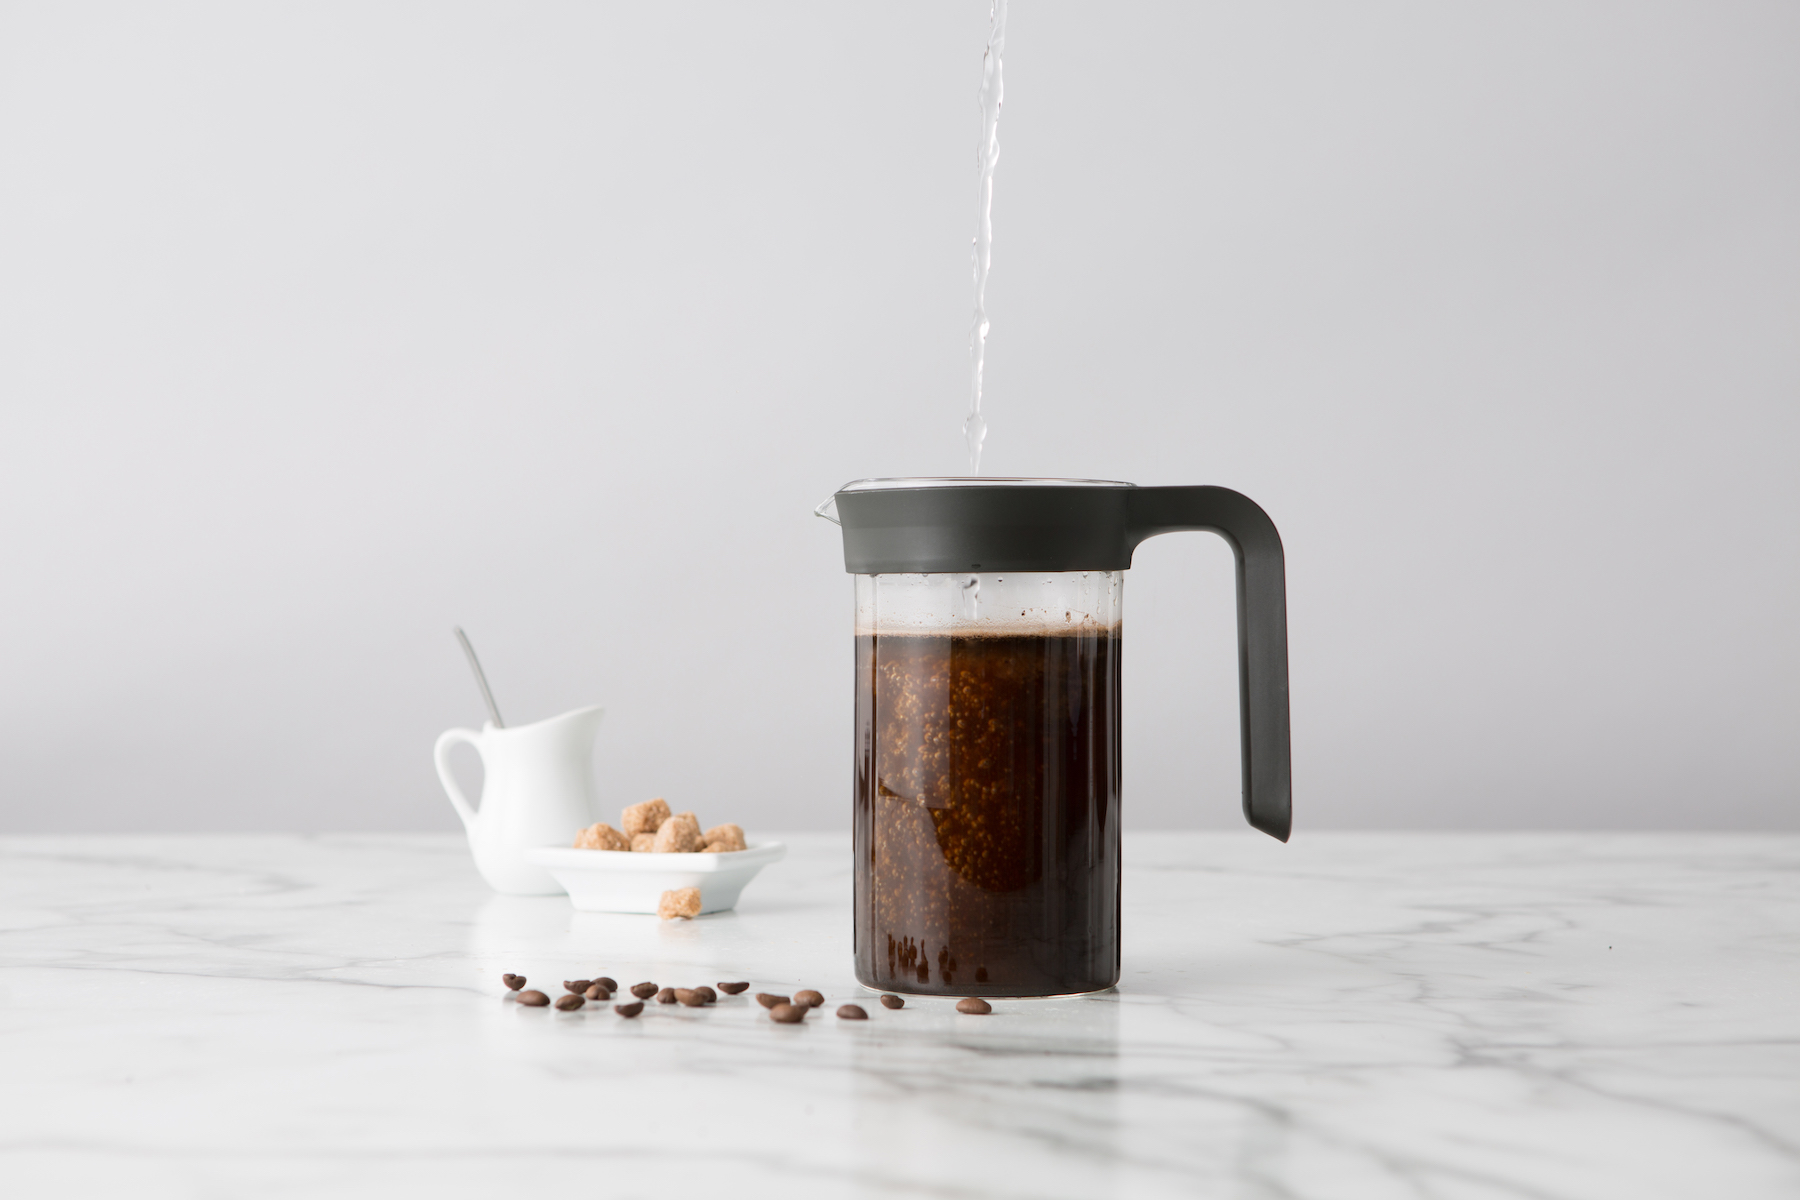 This Multi-Tasking Kitchen Gadget Makes a Seriously Good Cup of Coffee